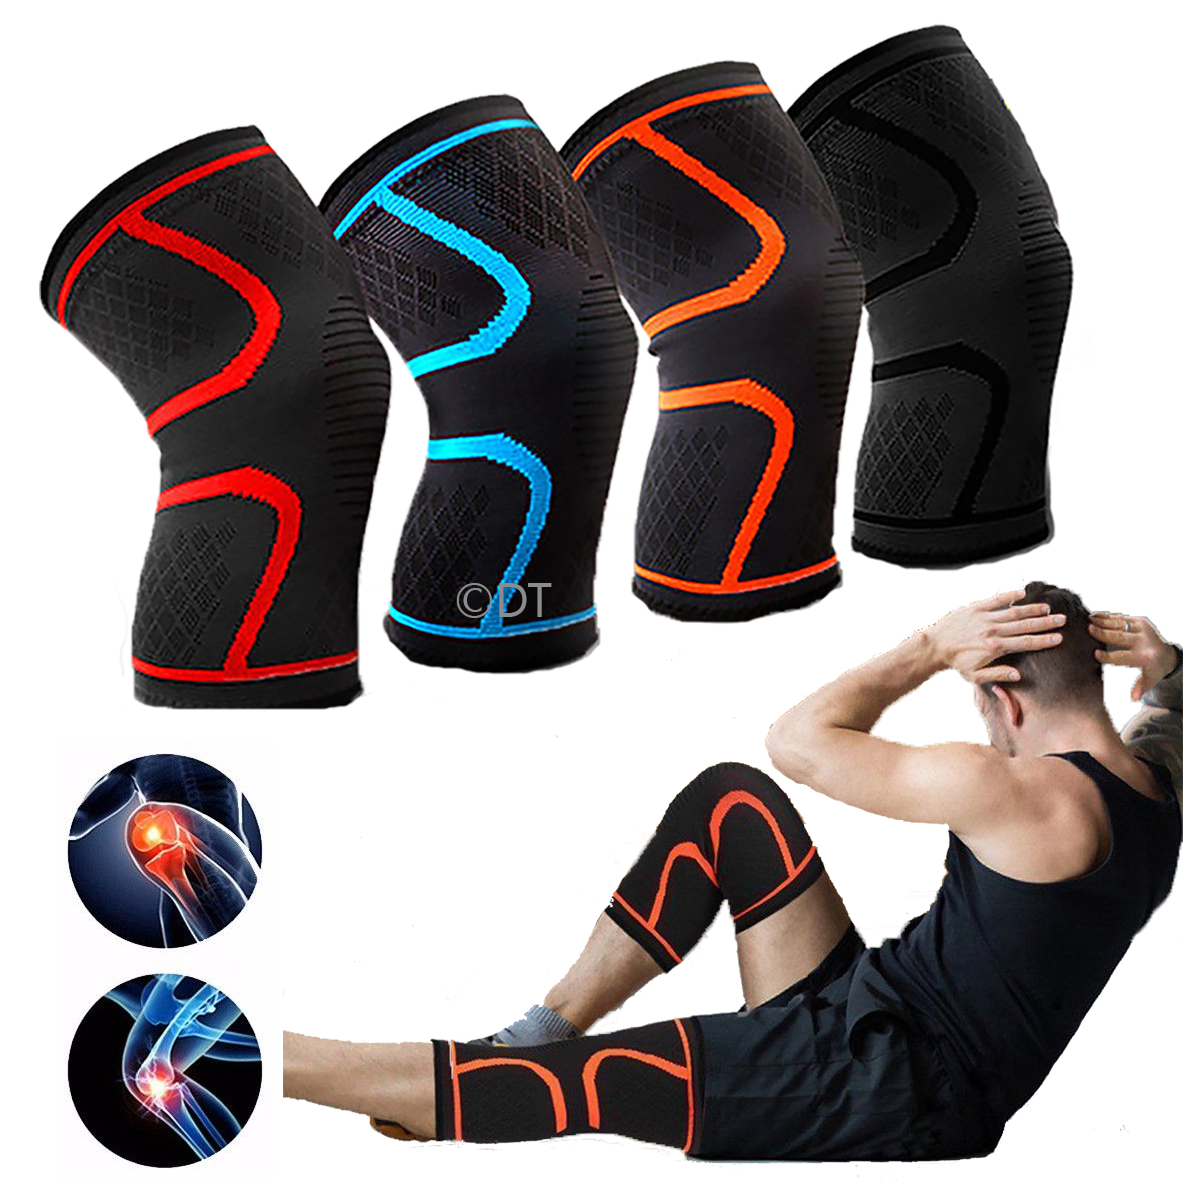 Knee Sleeve Compression Brace Support For Sport Joint Pain Arthritis Relief (Orange, Medium)